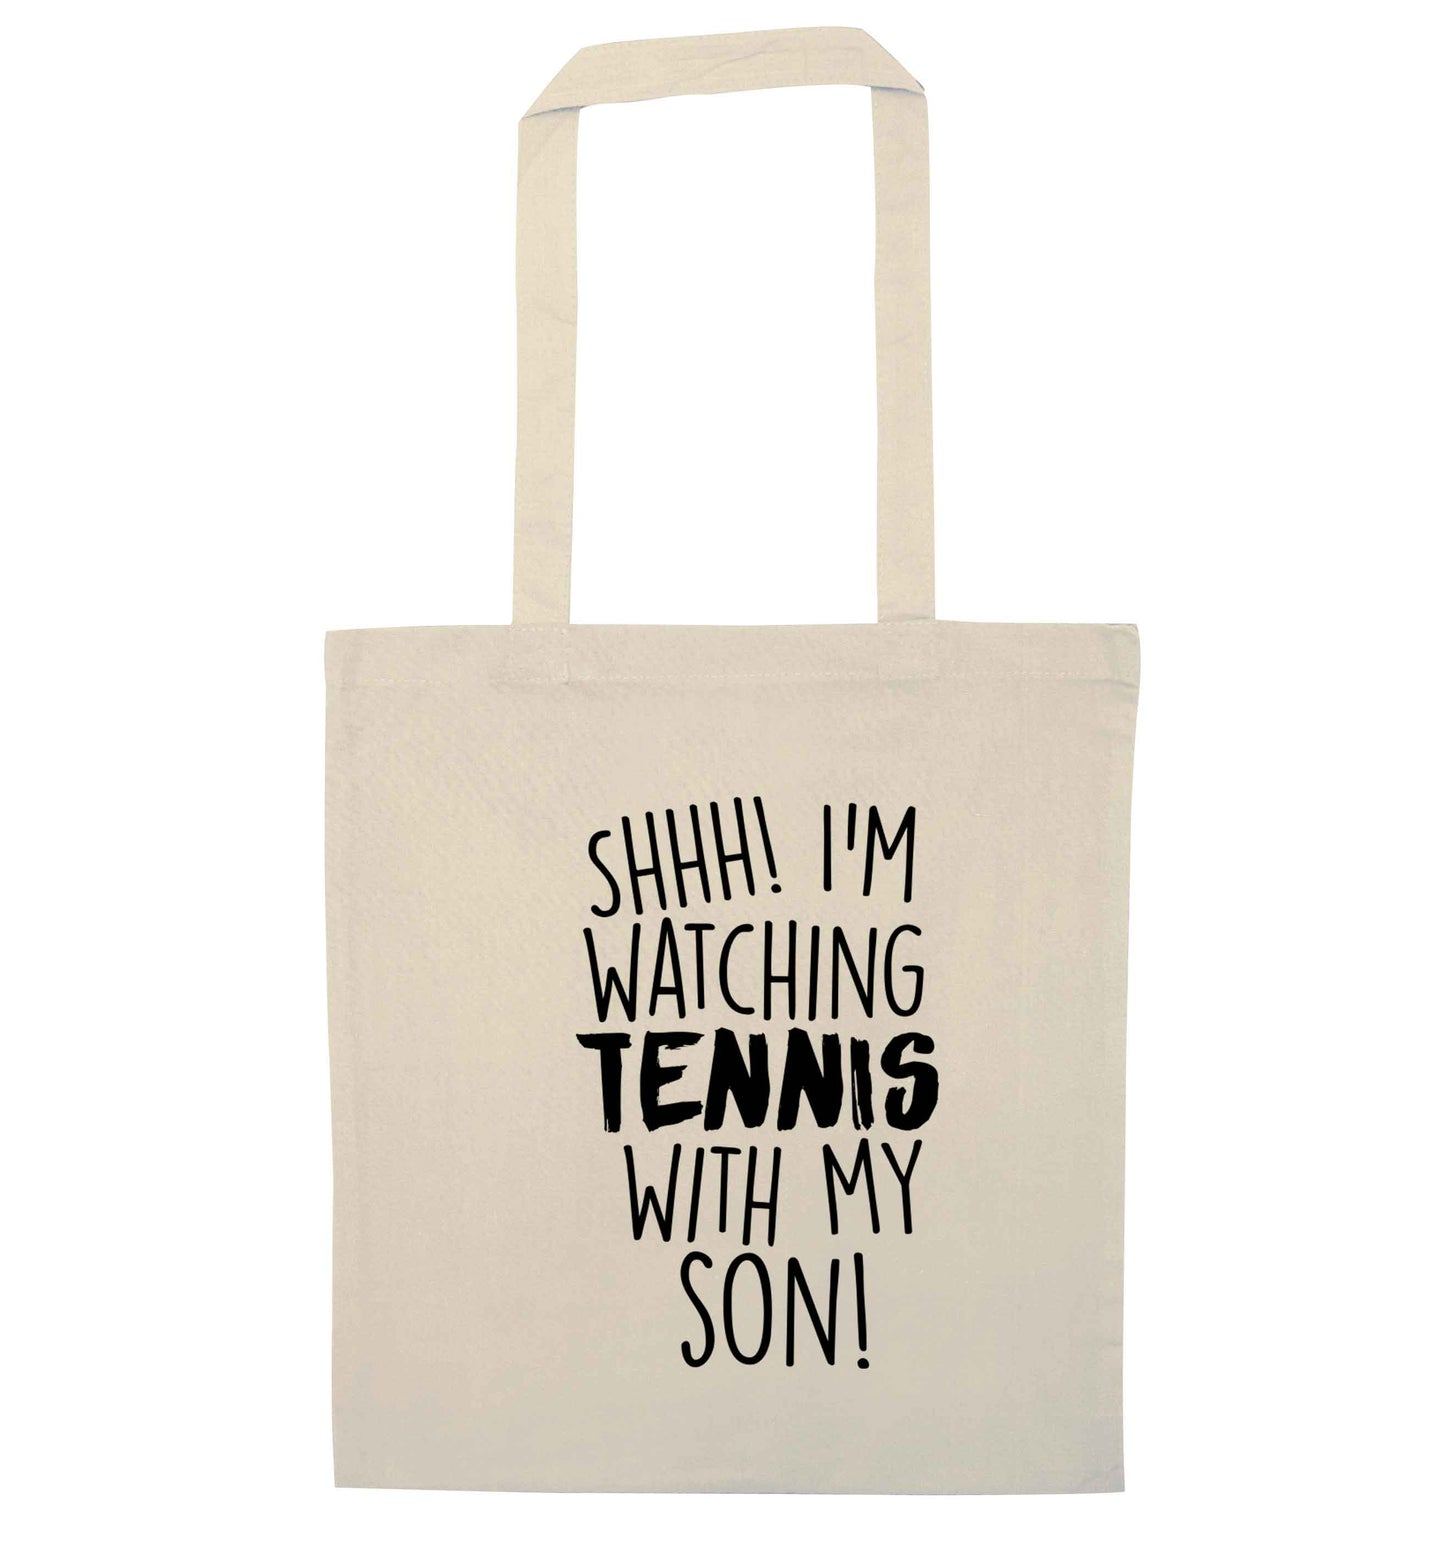 Shh! I'm watching tennis with my son! natural tote bag